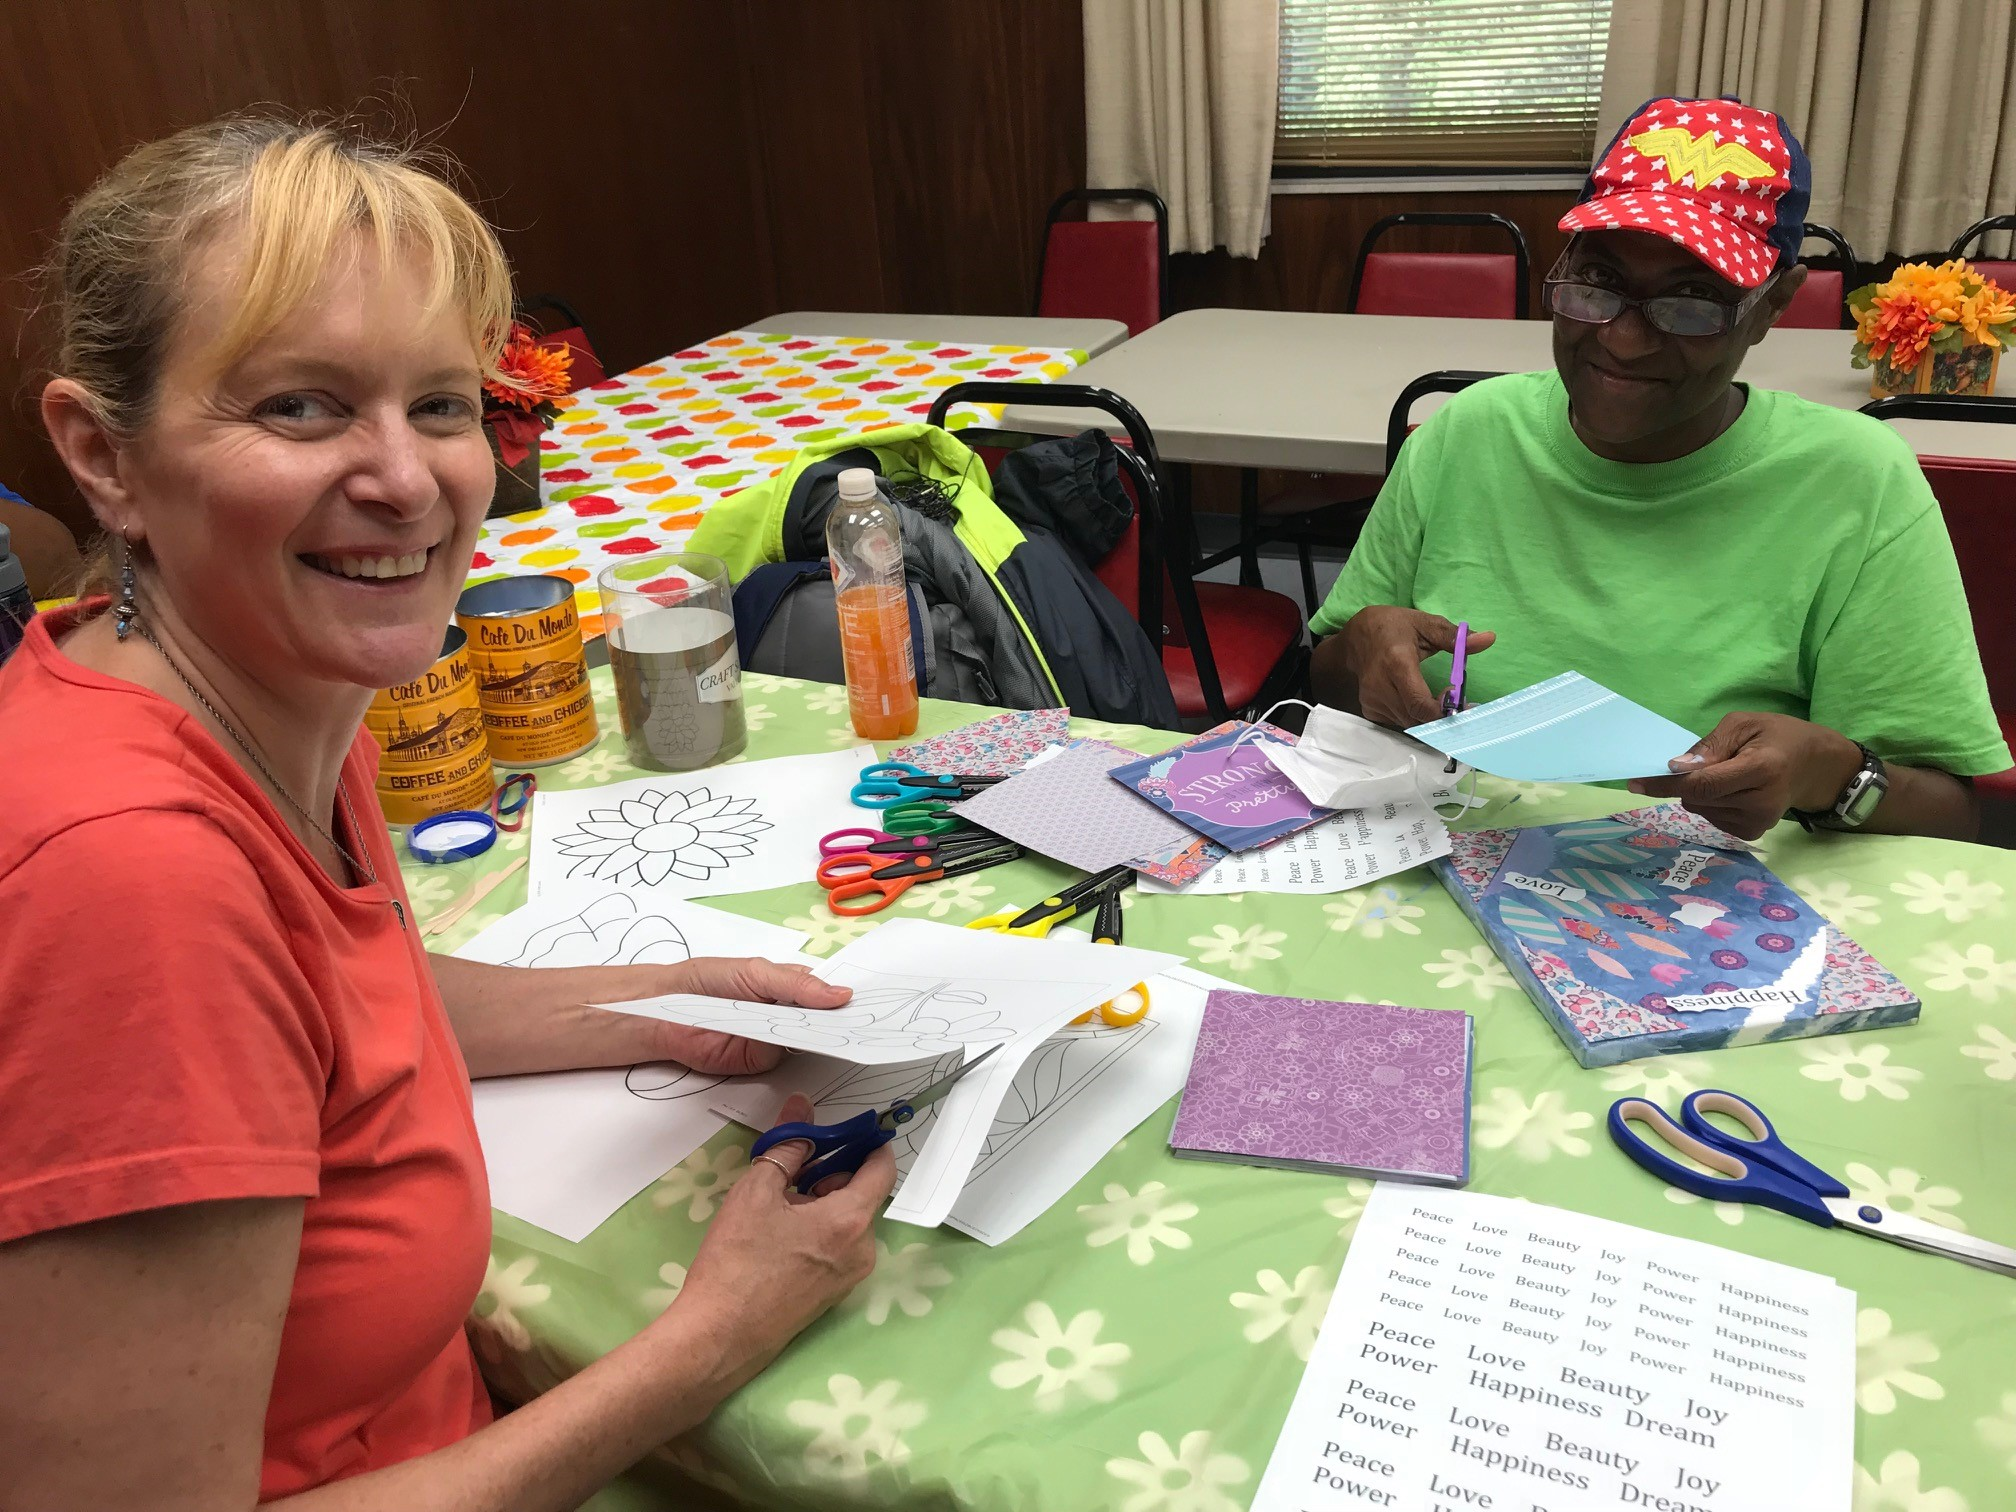 Host a Holiday Craft - Volunteer developed activities enrich the lives of homeless women at Women's Center of Wake County who are struggling to get on their feet this holiday season. Brighten their holidays by hosting a special holiday craft.